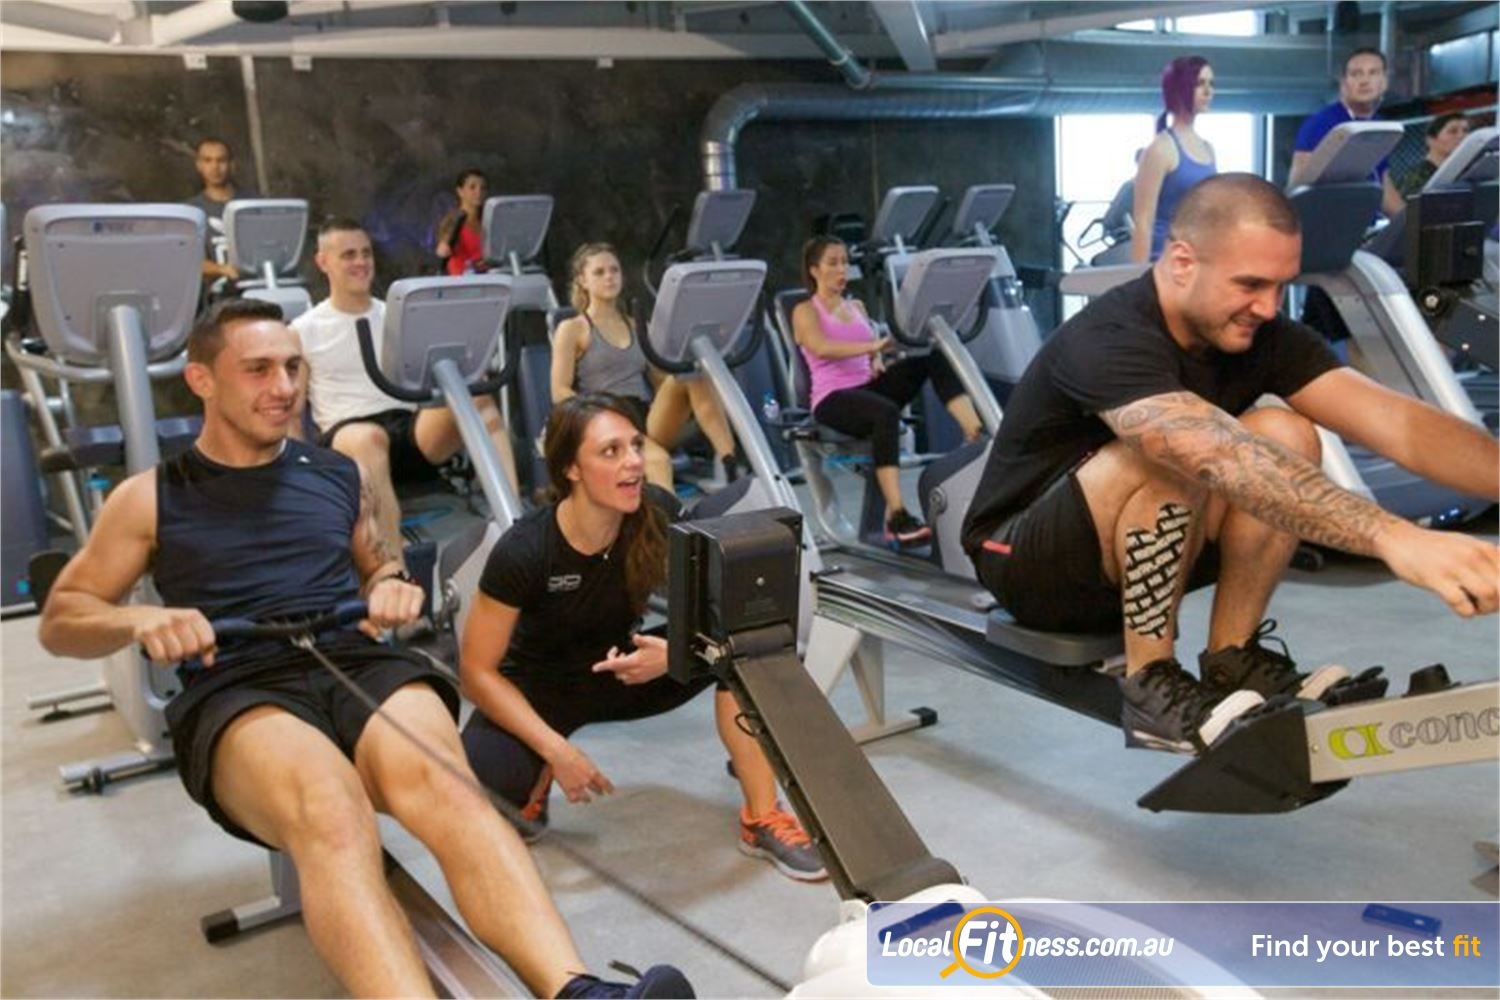 Goodlife Health Clubs Springwood Our Springwood personal trainers can take your cardio to the next level.